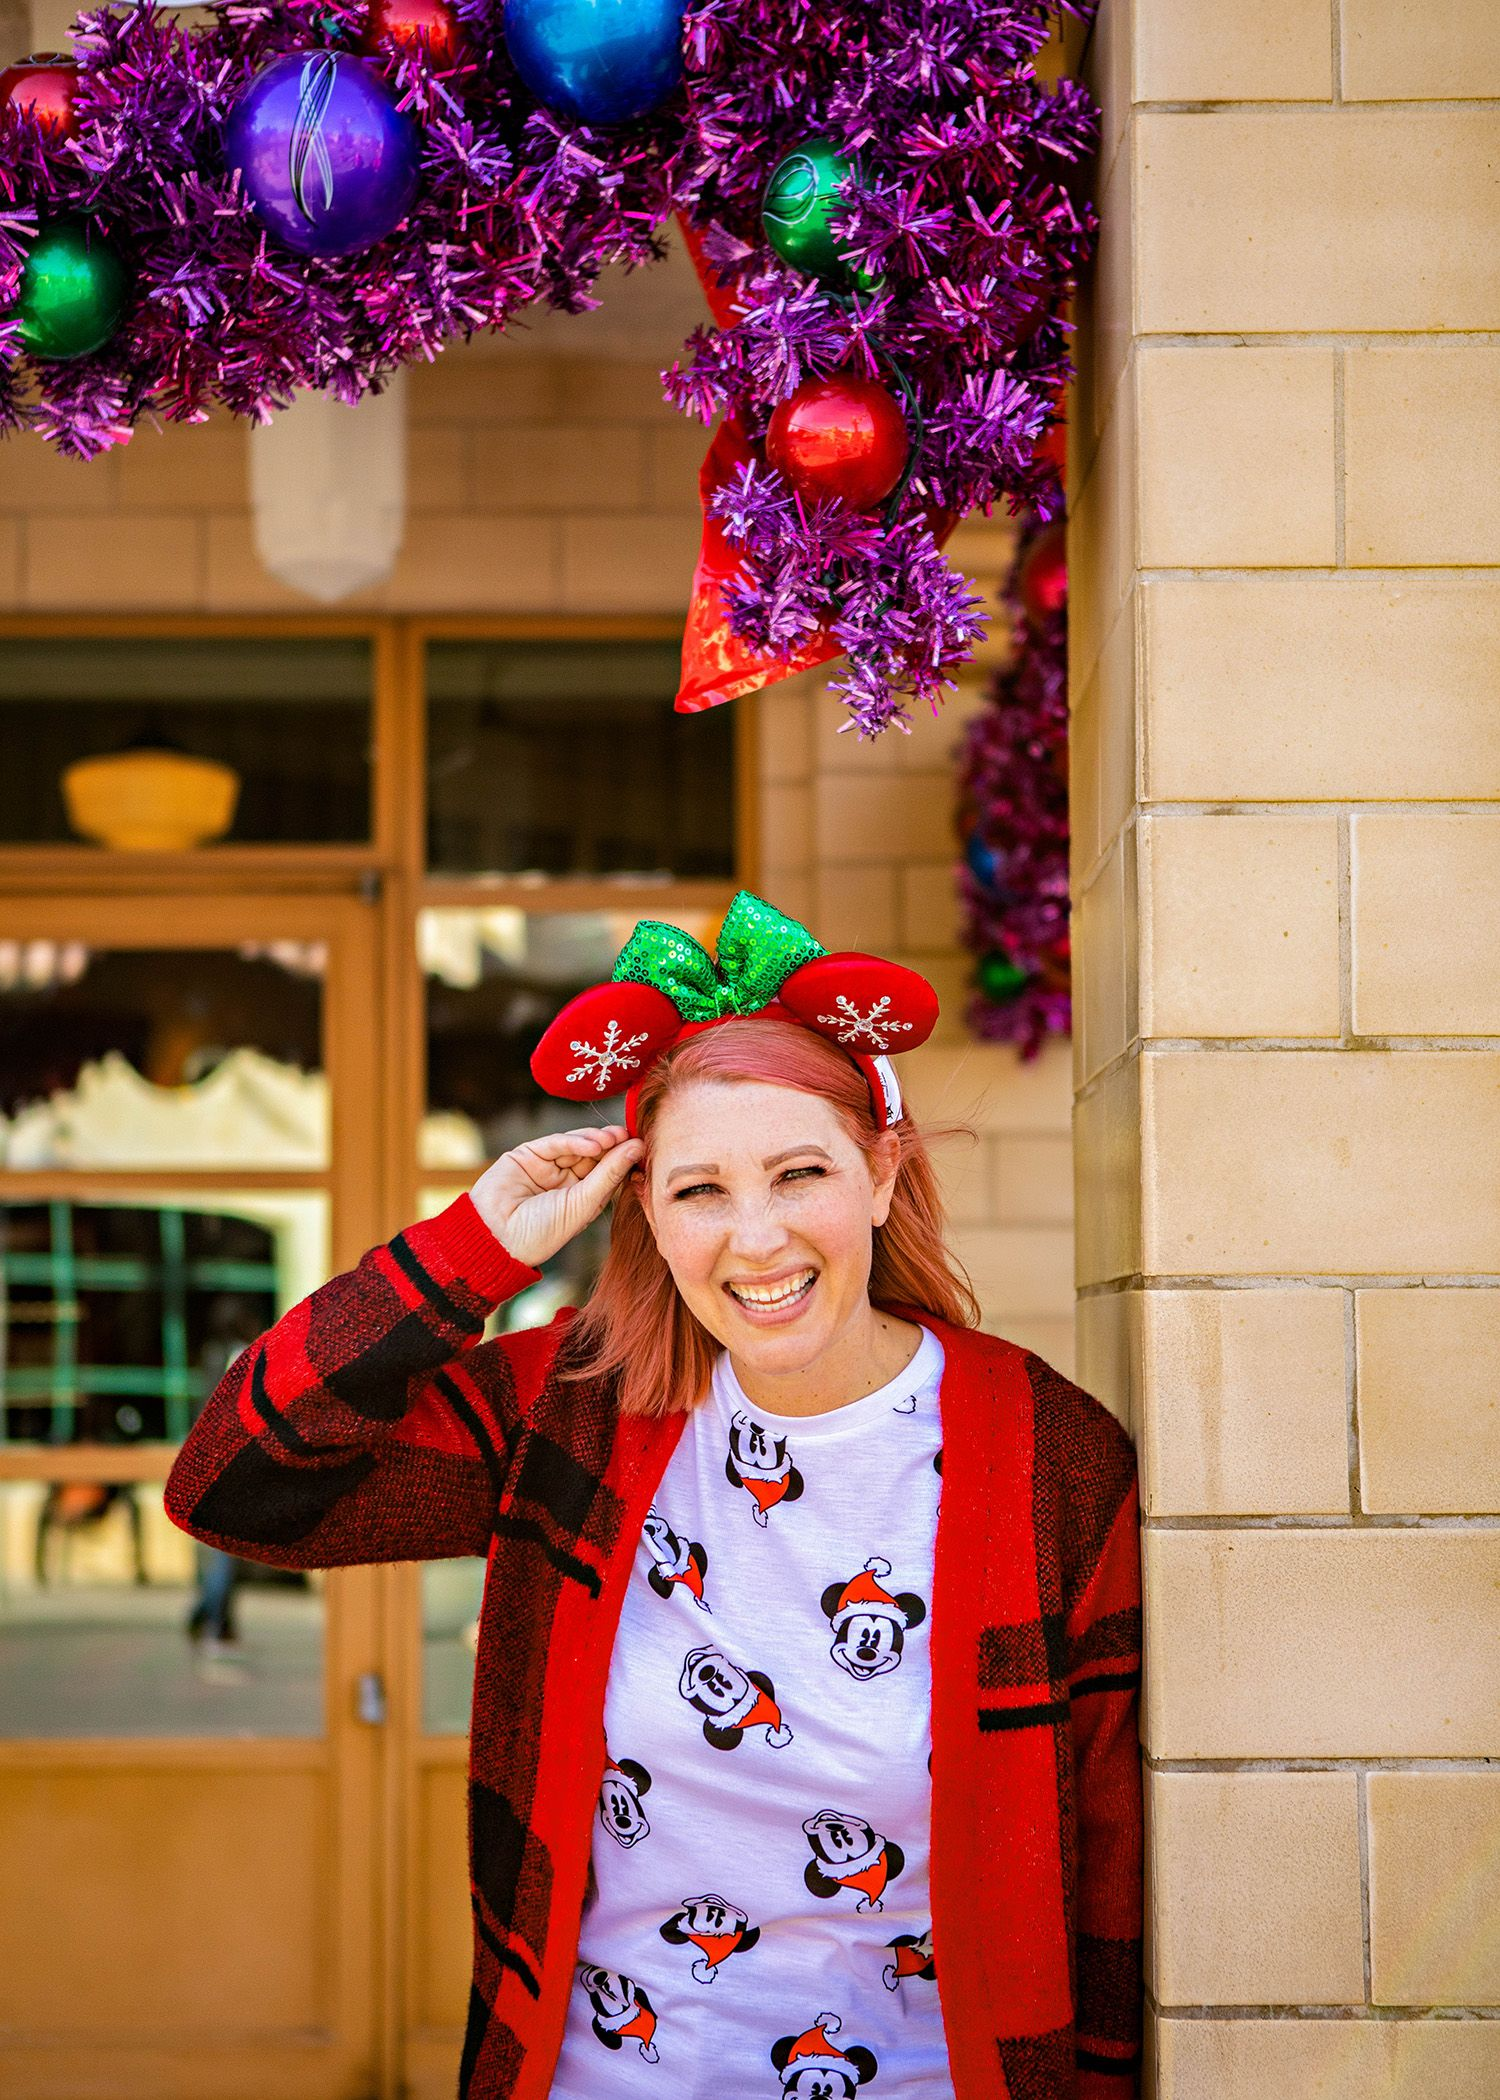 c507de04aed0 Looking for fun Disneyland outfits  This Mickey Christmas Tee is PERFECT  for Disneyland Christmas trips!  disneyland  disneystyle